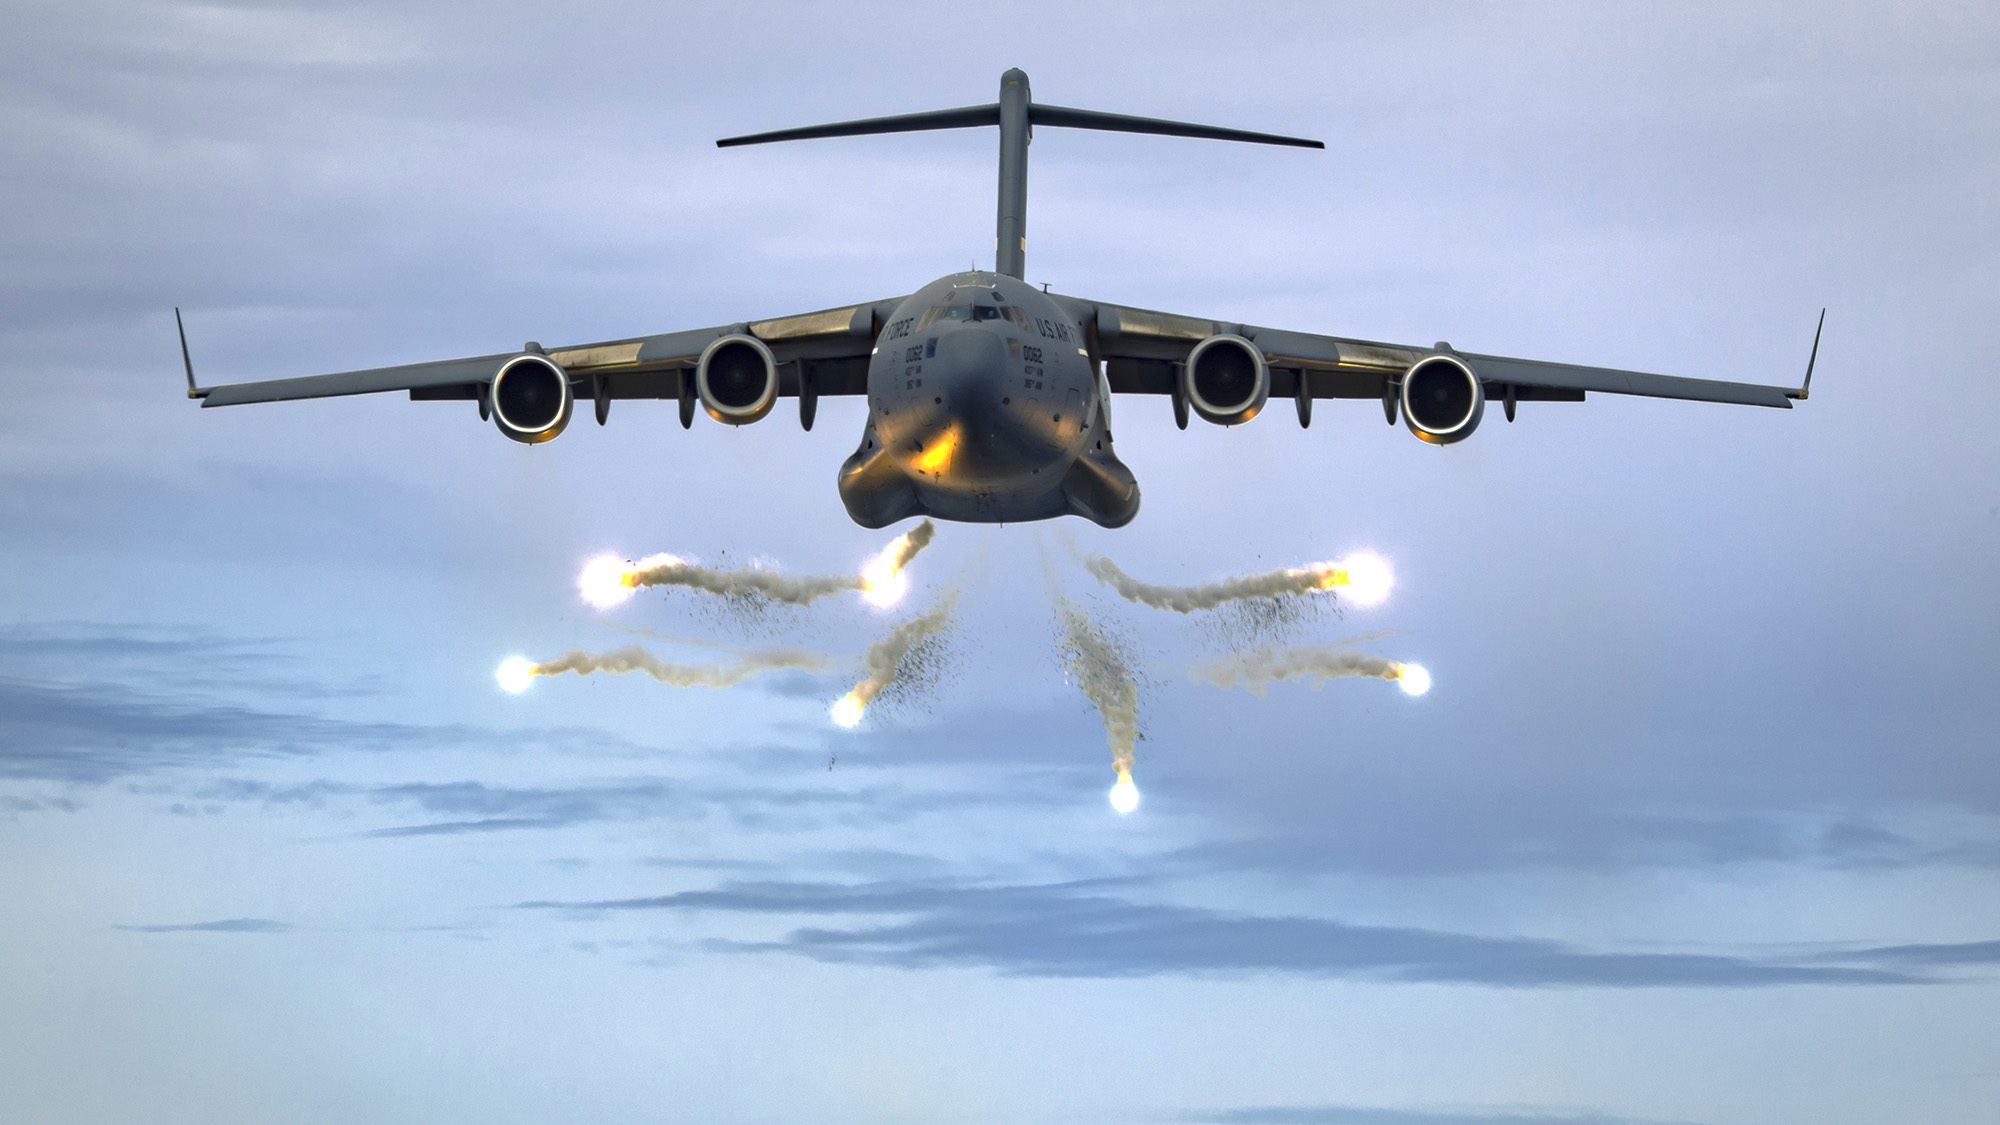 A C-17 Globemaster III deploys flares as part of a training event over the Atlantic Ocean in a military operating area outside Charleston, S.C., June 5, 2021. (Tech. Sgt. Chris Hibben/Air Force)